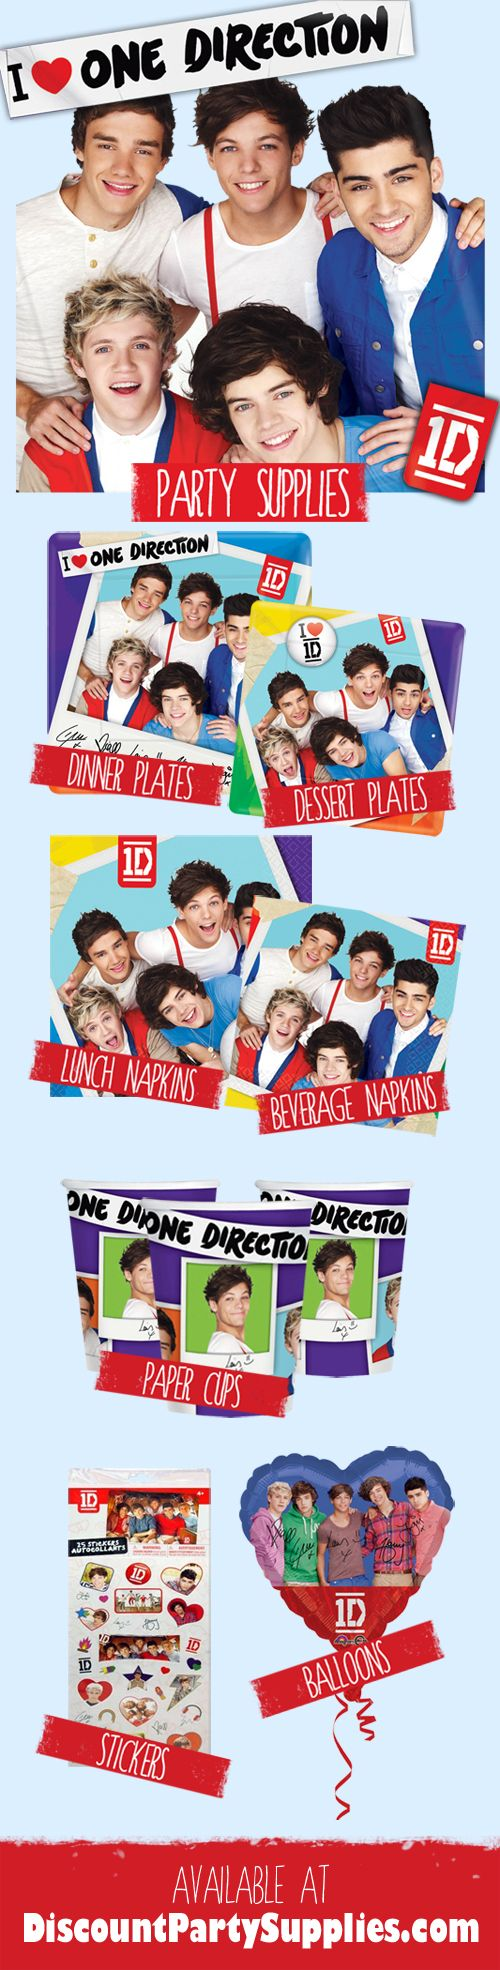 7 Must Have One Direction Party Supplies To Kick Off Your Summer!